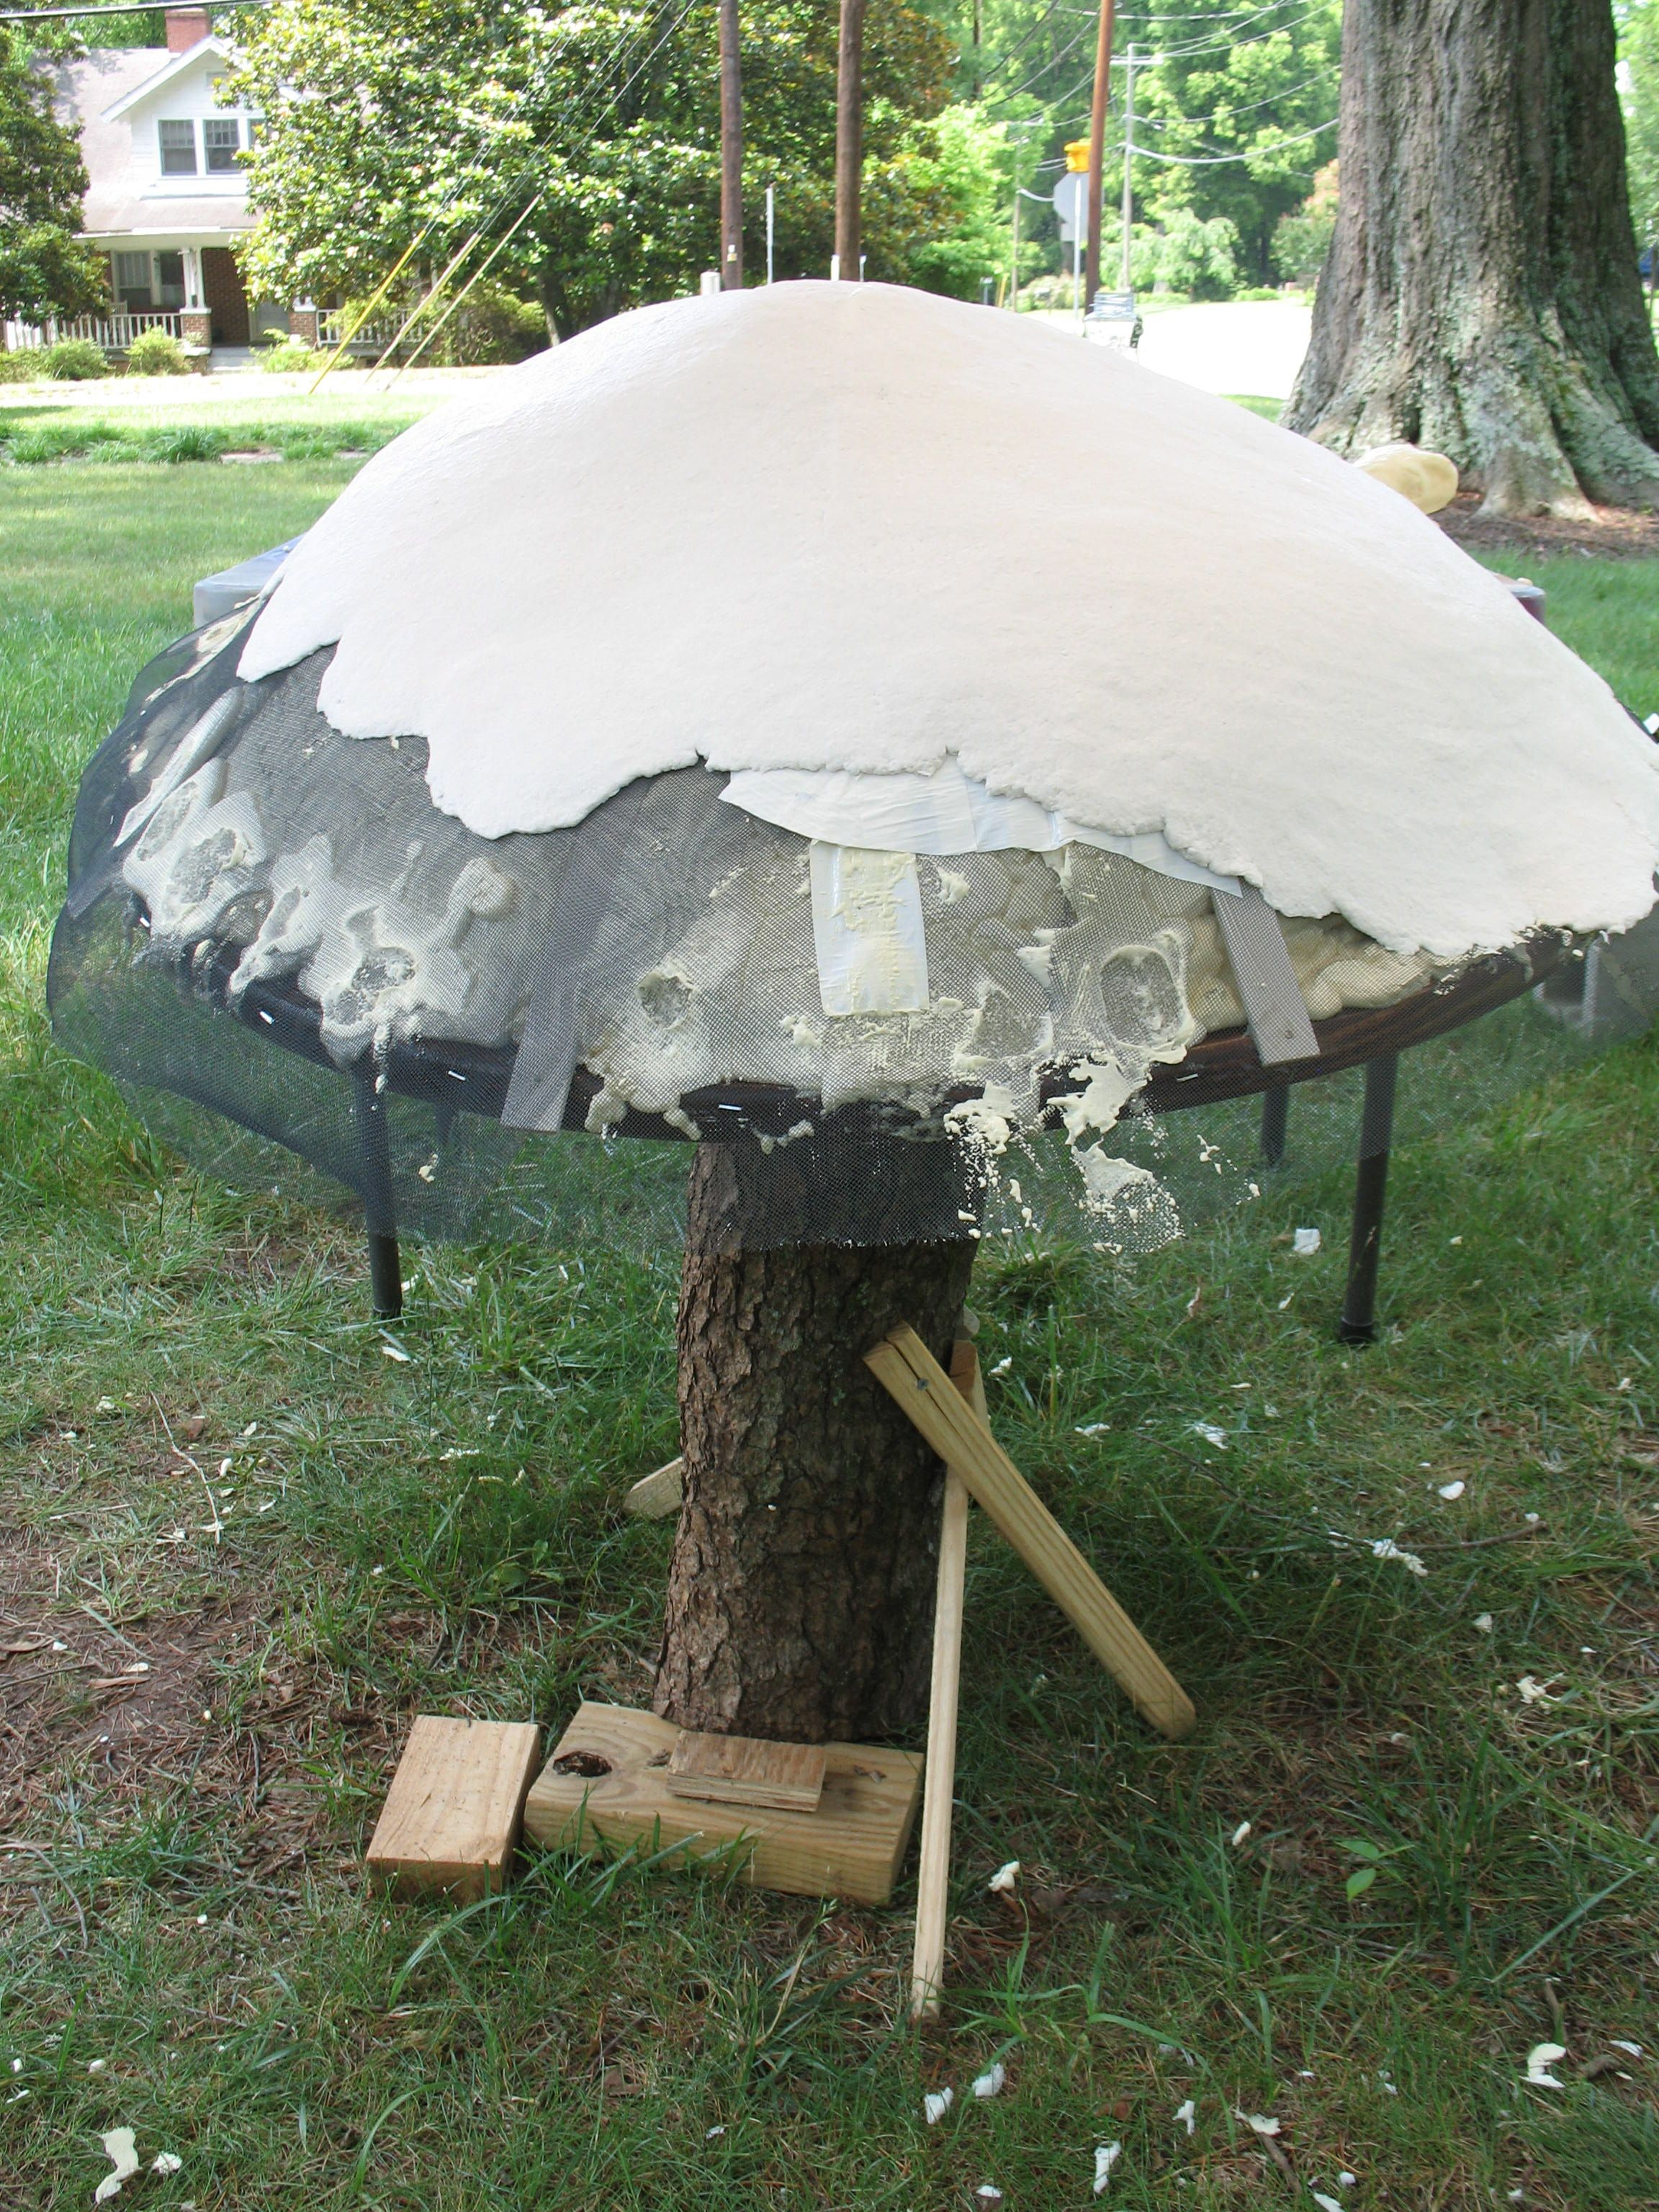 Layer One Of Paper Mache On Mushroom Top To Make Giant Mushrooms For  Wonderland Party.